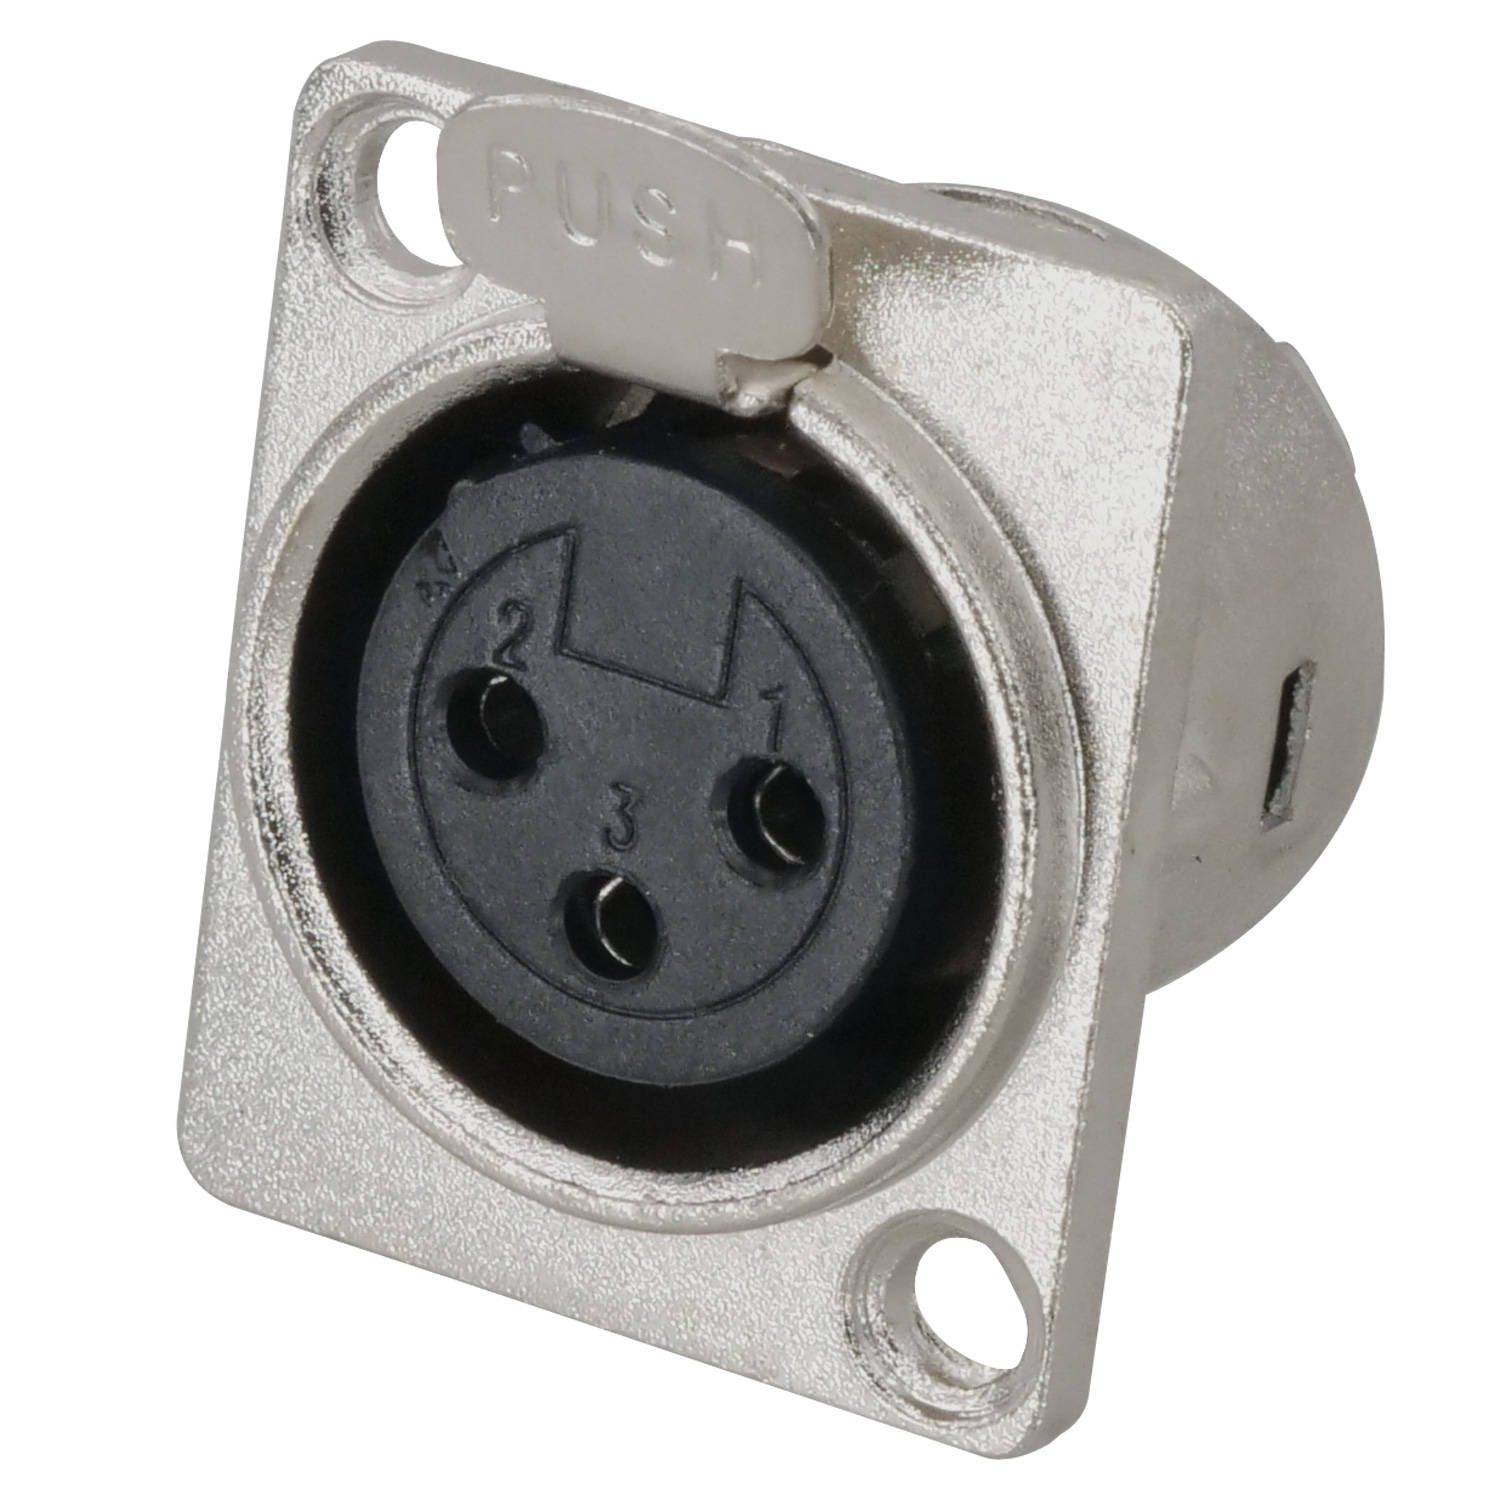 XLR Chassis Mount Connector, 3-pin, Female, Nickel Shell, Silver Contact